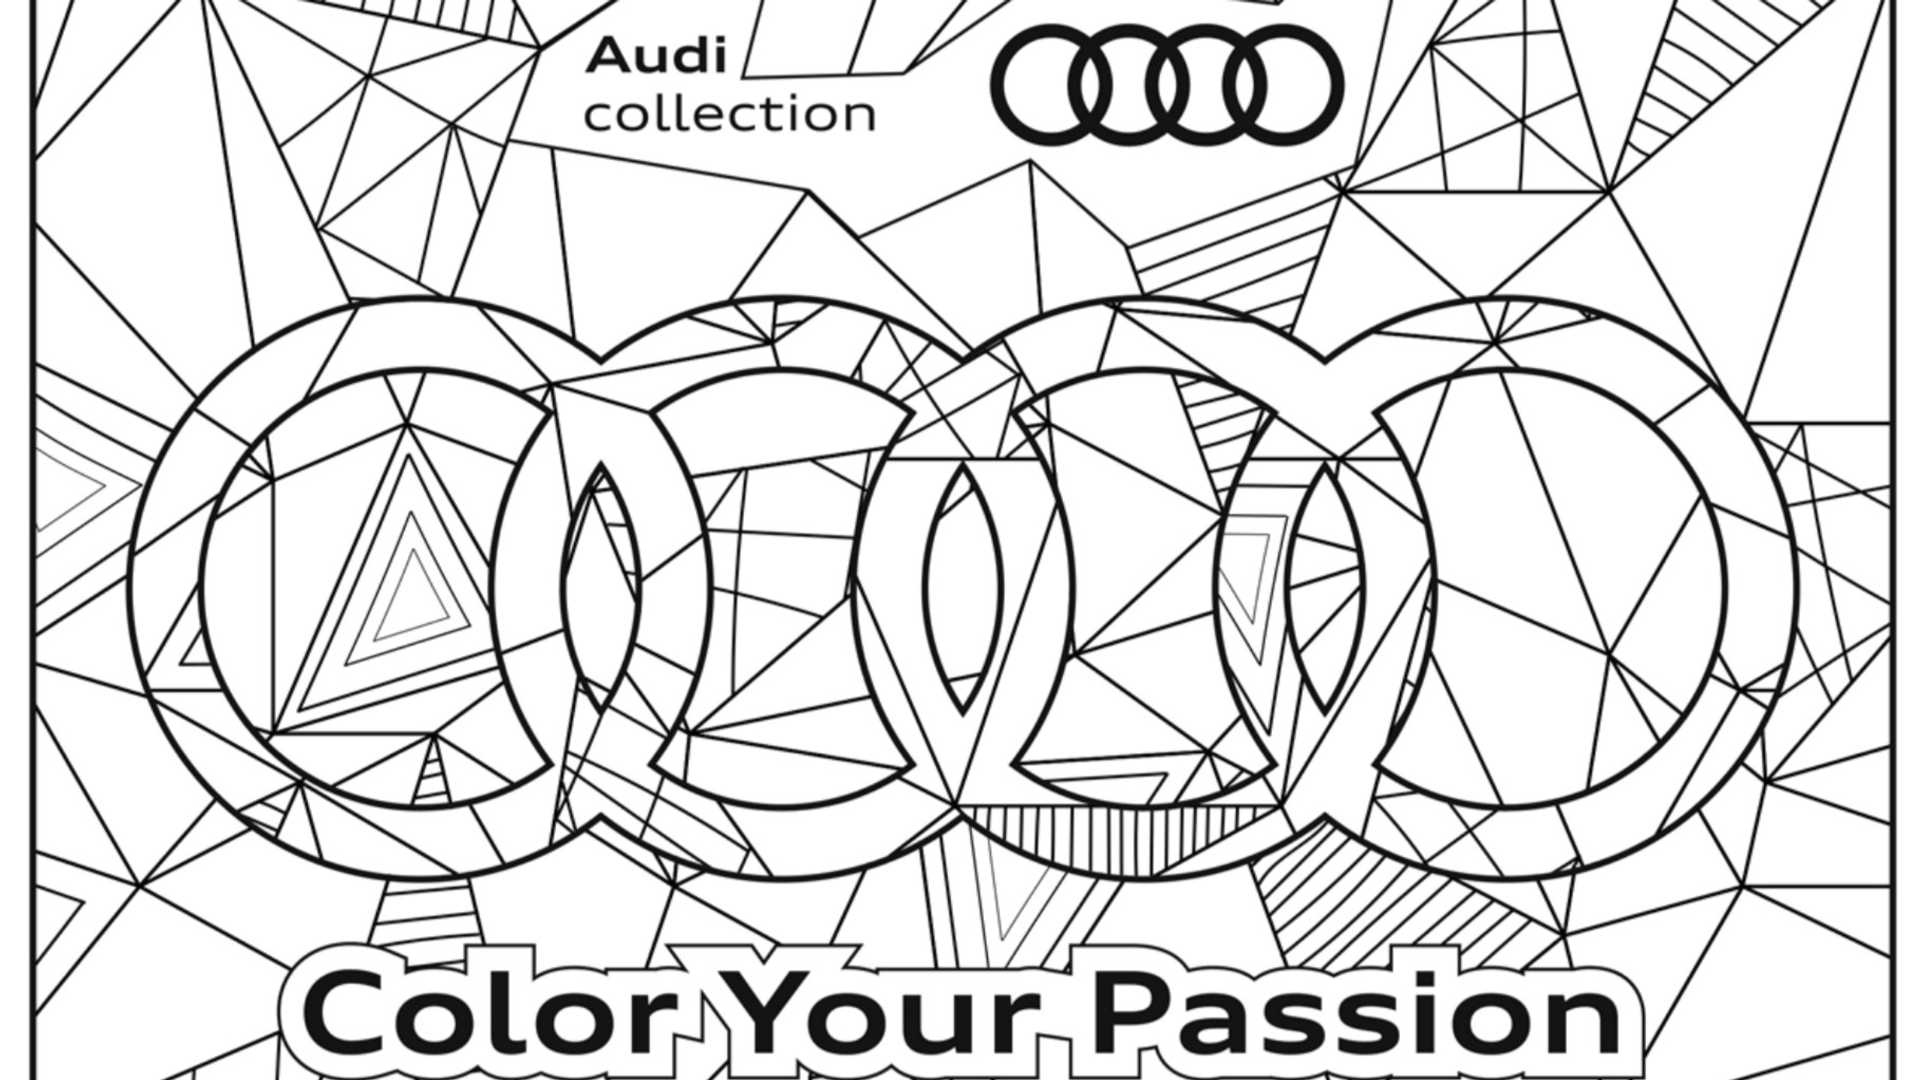 - Here Are Car-Themed Coloring Pages To Keep You And The Kids Busy